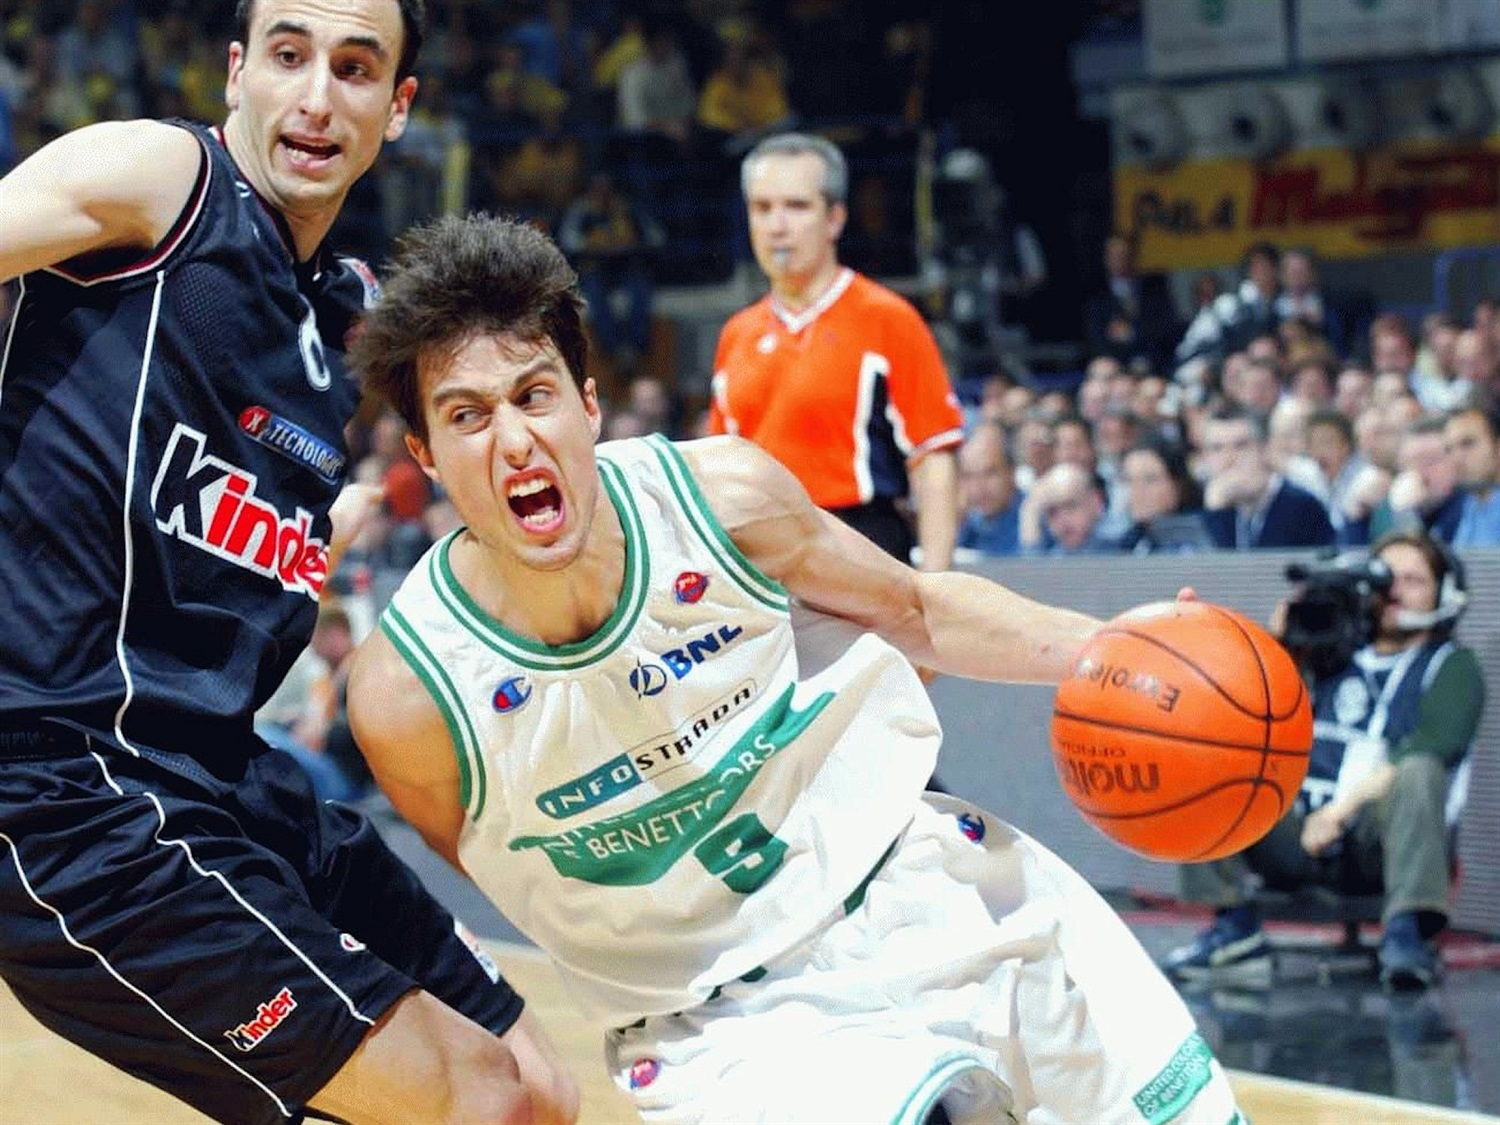 Massimo Bulleri - Benetton Basket - Final Four Bologna 2002 - EB01